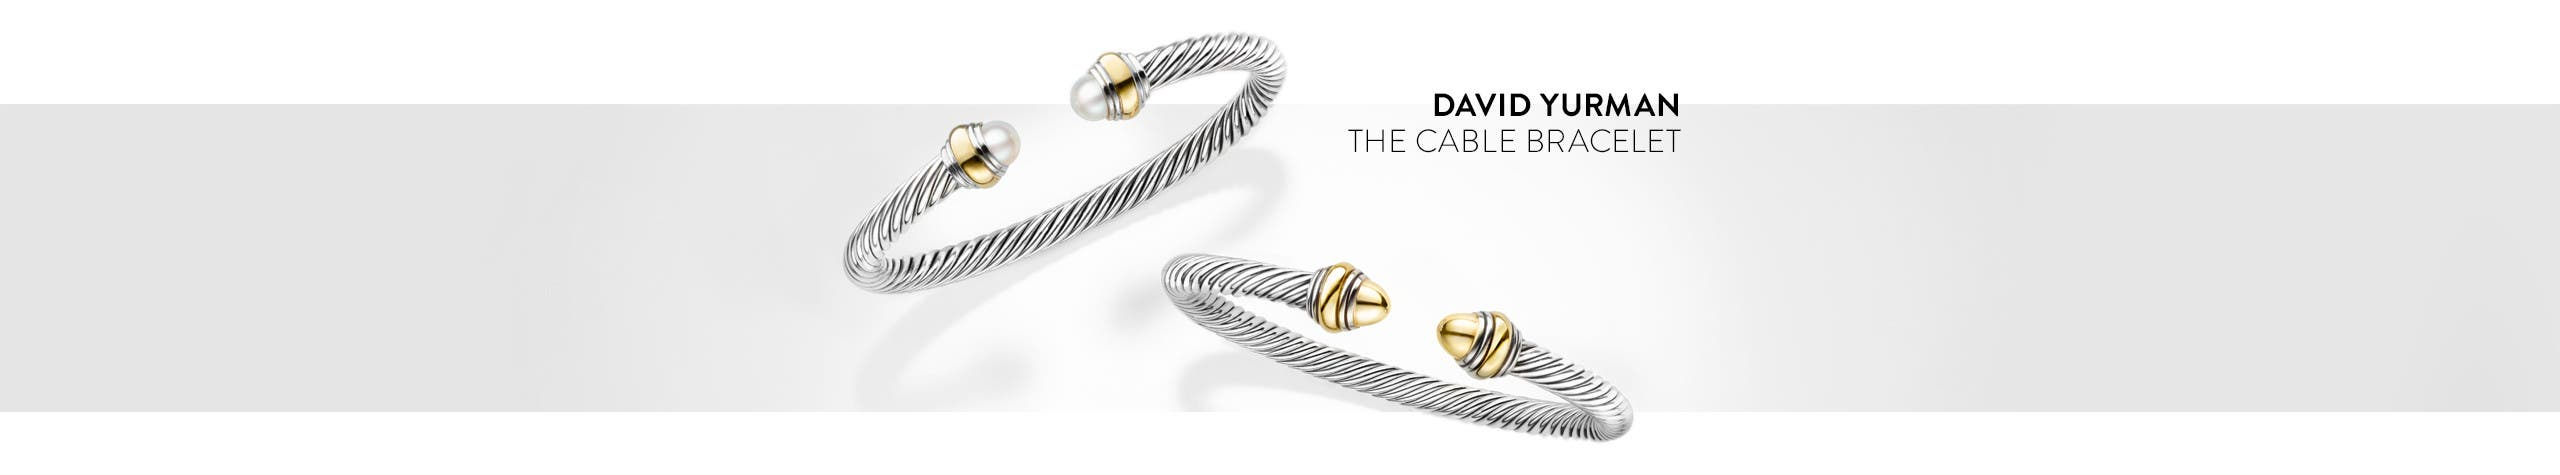 David Yurman: the cable bracelet.